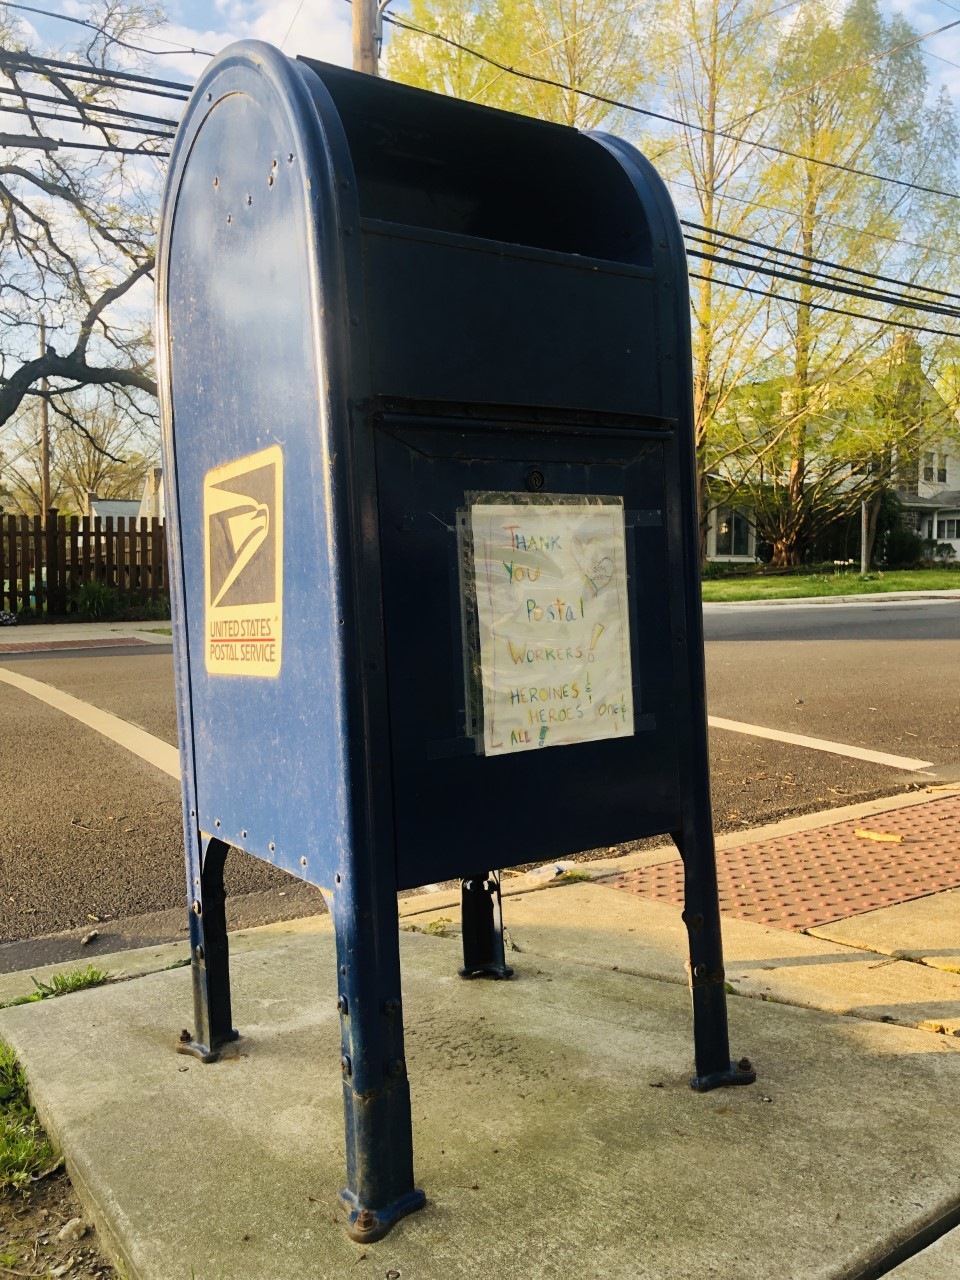 Image of a US postal drop box with a hand drawn letter from a child thanking postal workers for their service.